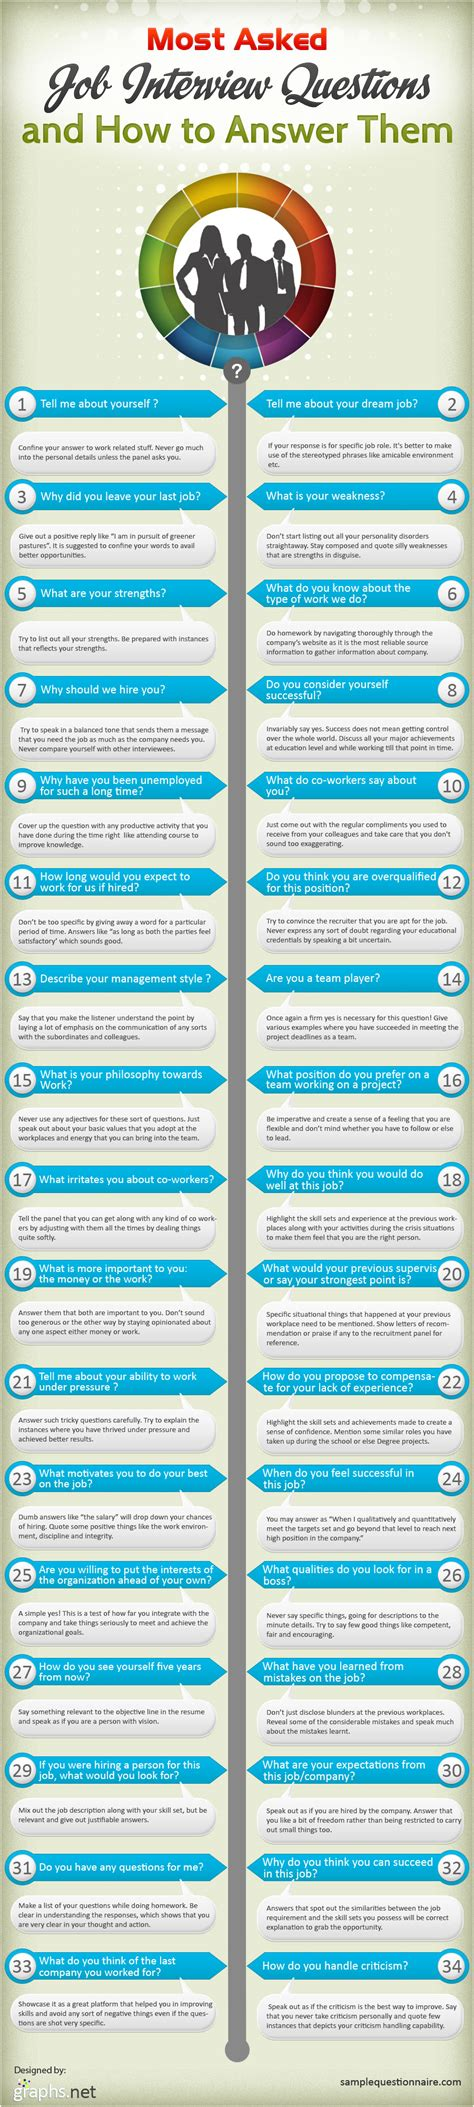 how to answer commonly asked question at